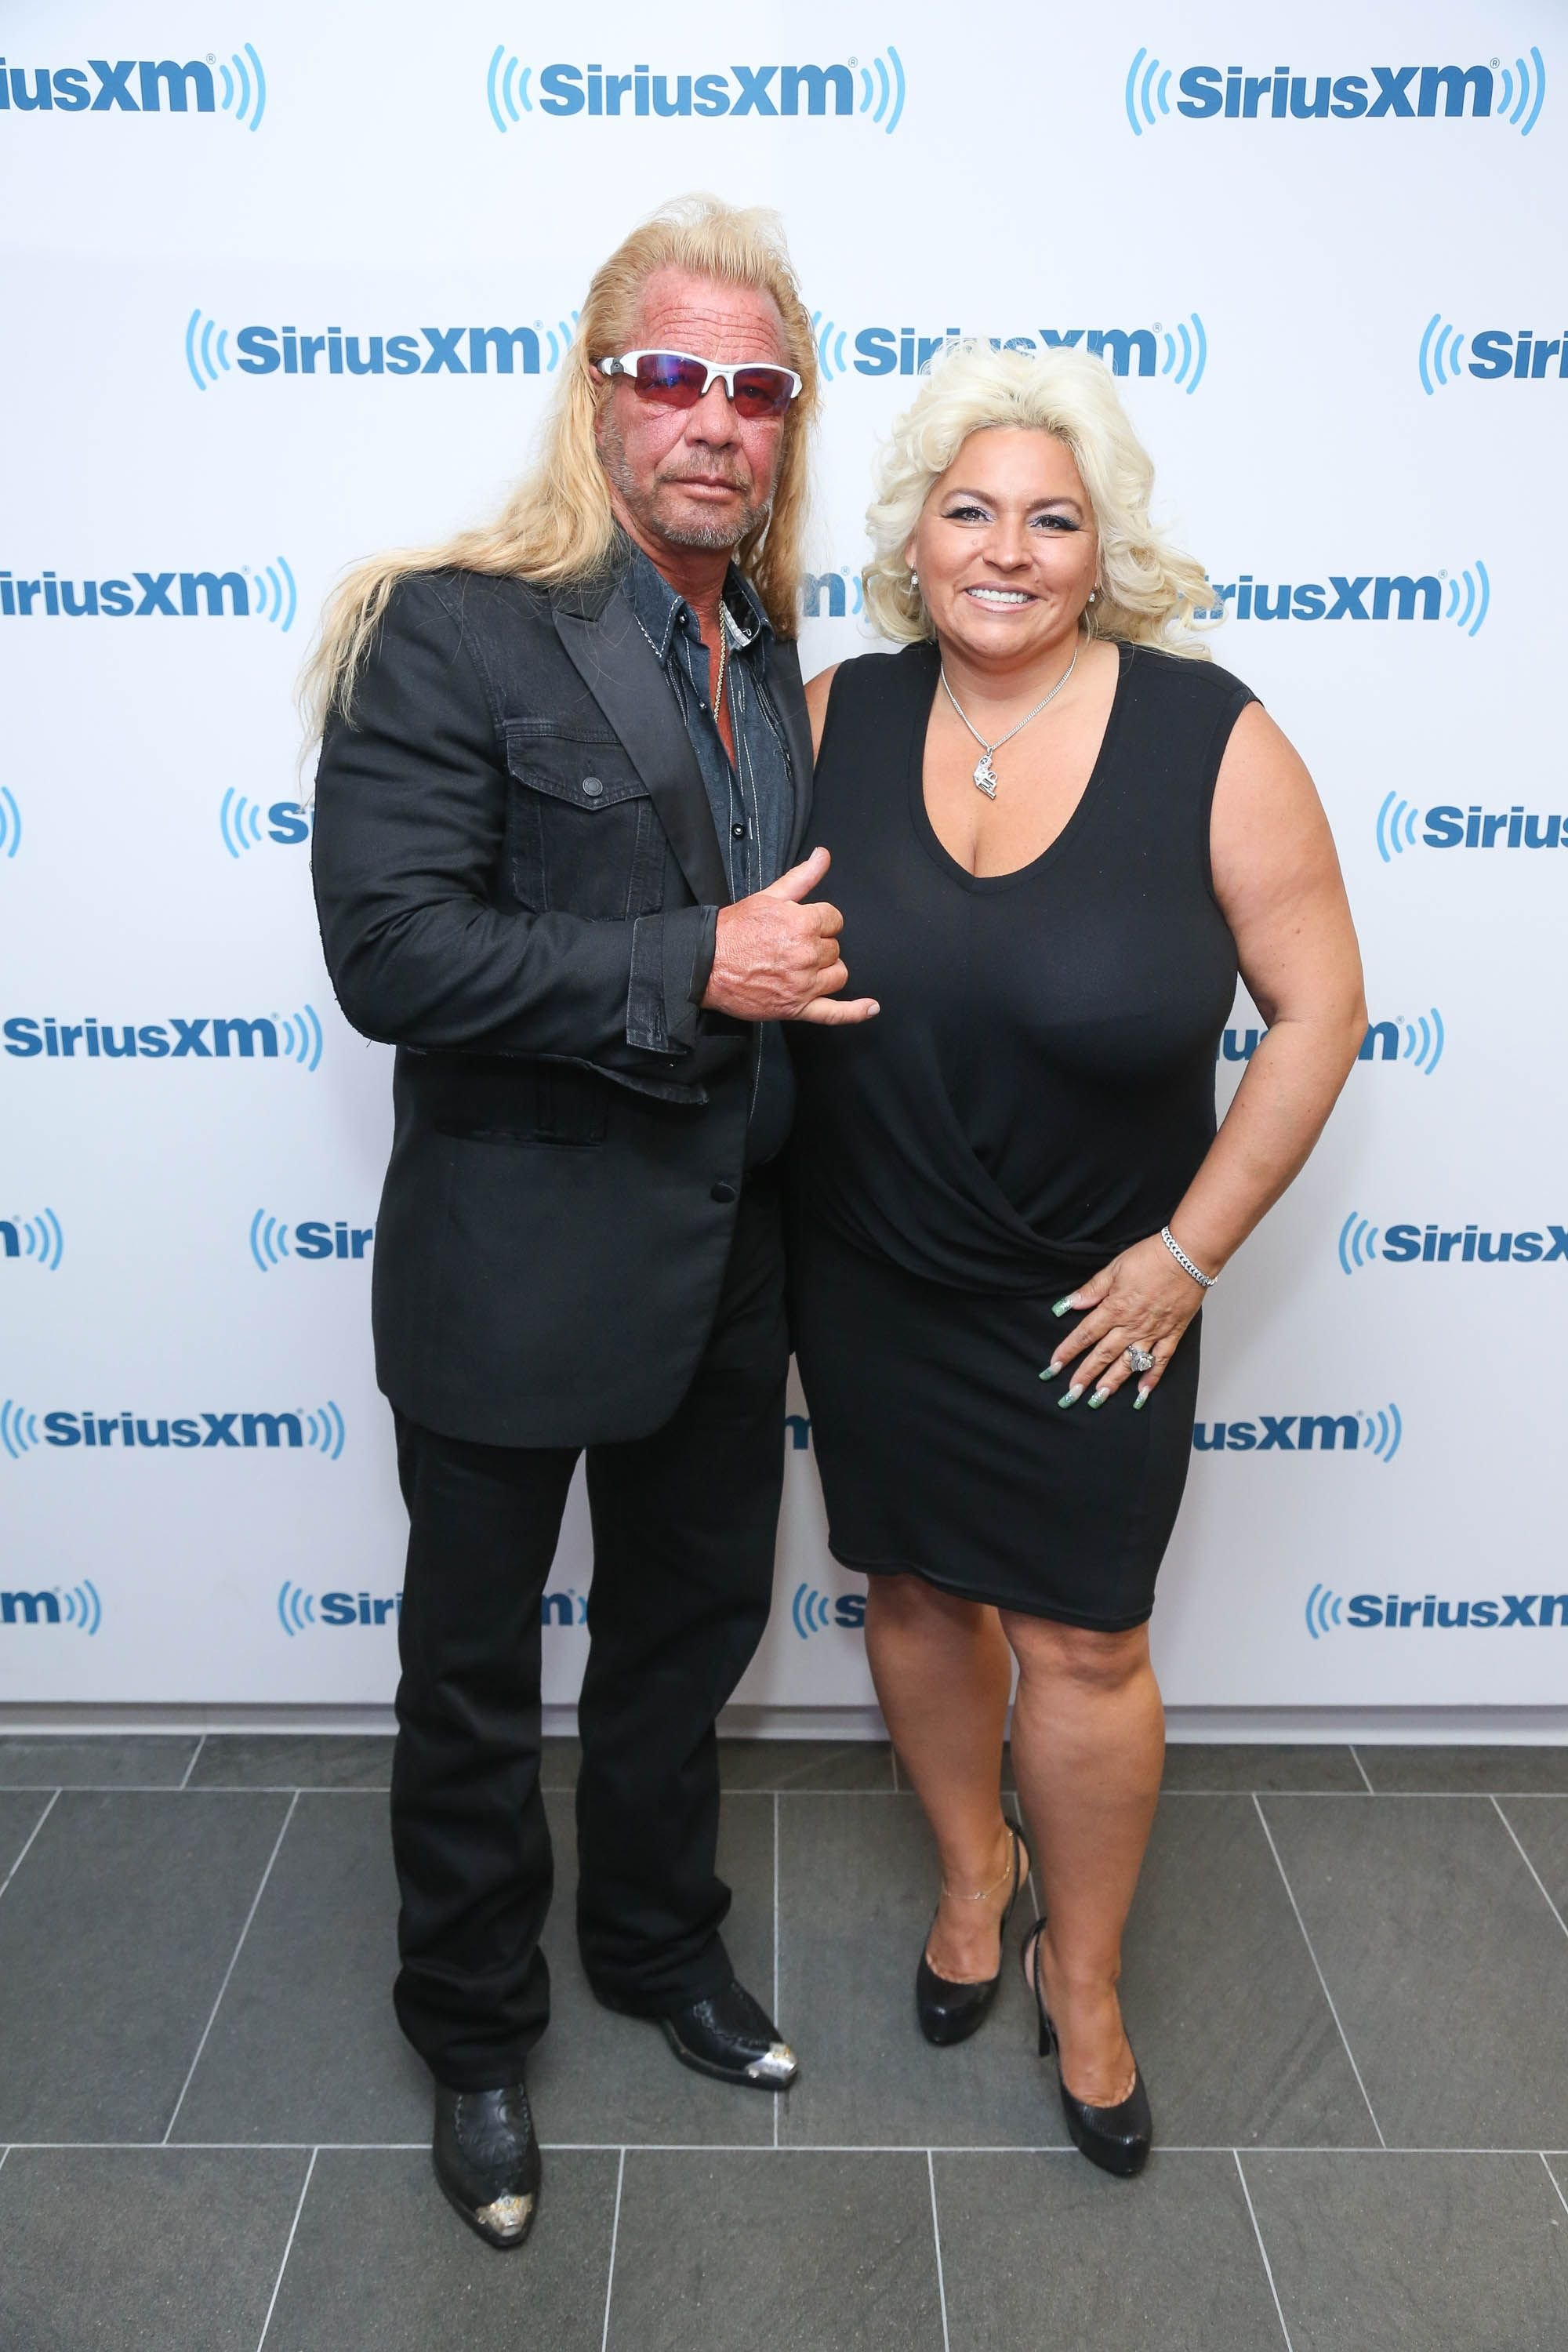 Duane and Beth Chapman at SiriusXM Studios on June 9, 2014 in New York City | Getty Images